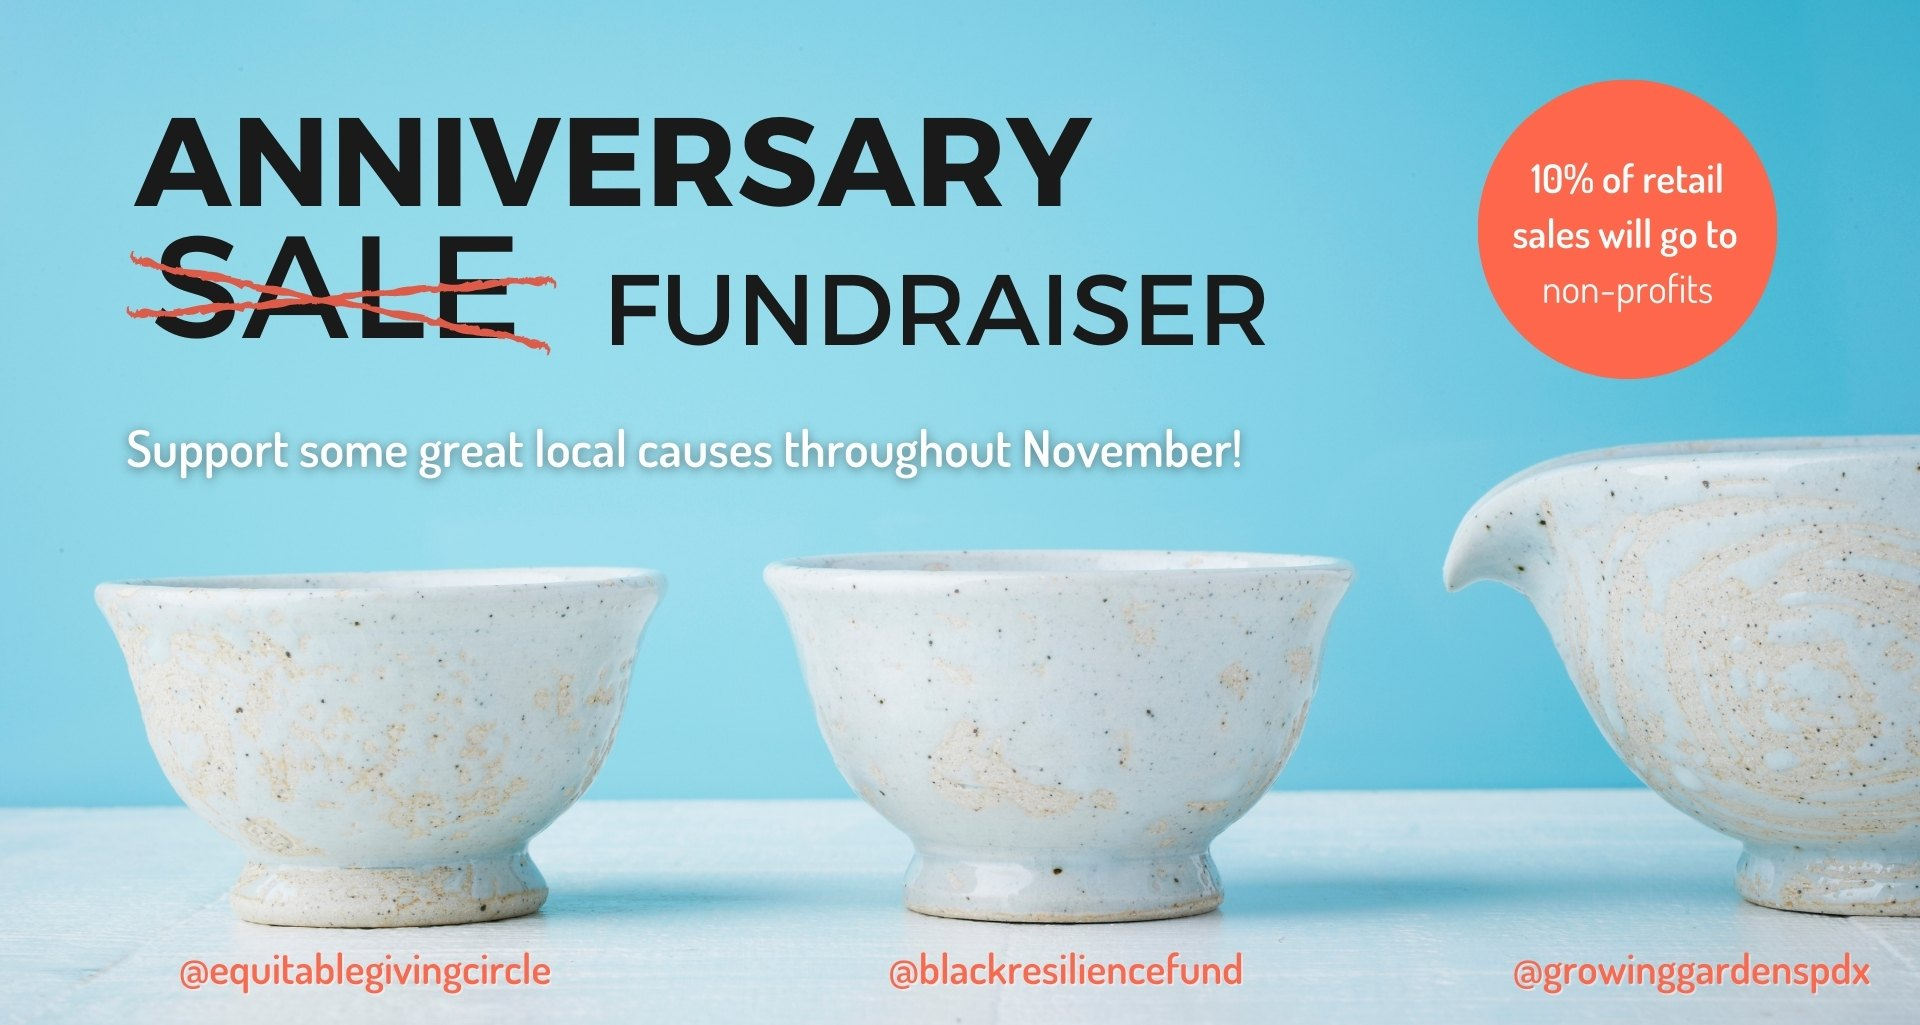 anniversary-fundraiser-web-banner-with-tags.jpg